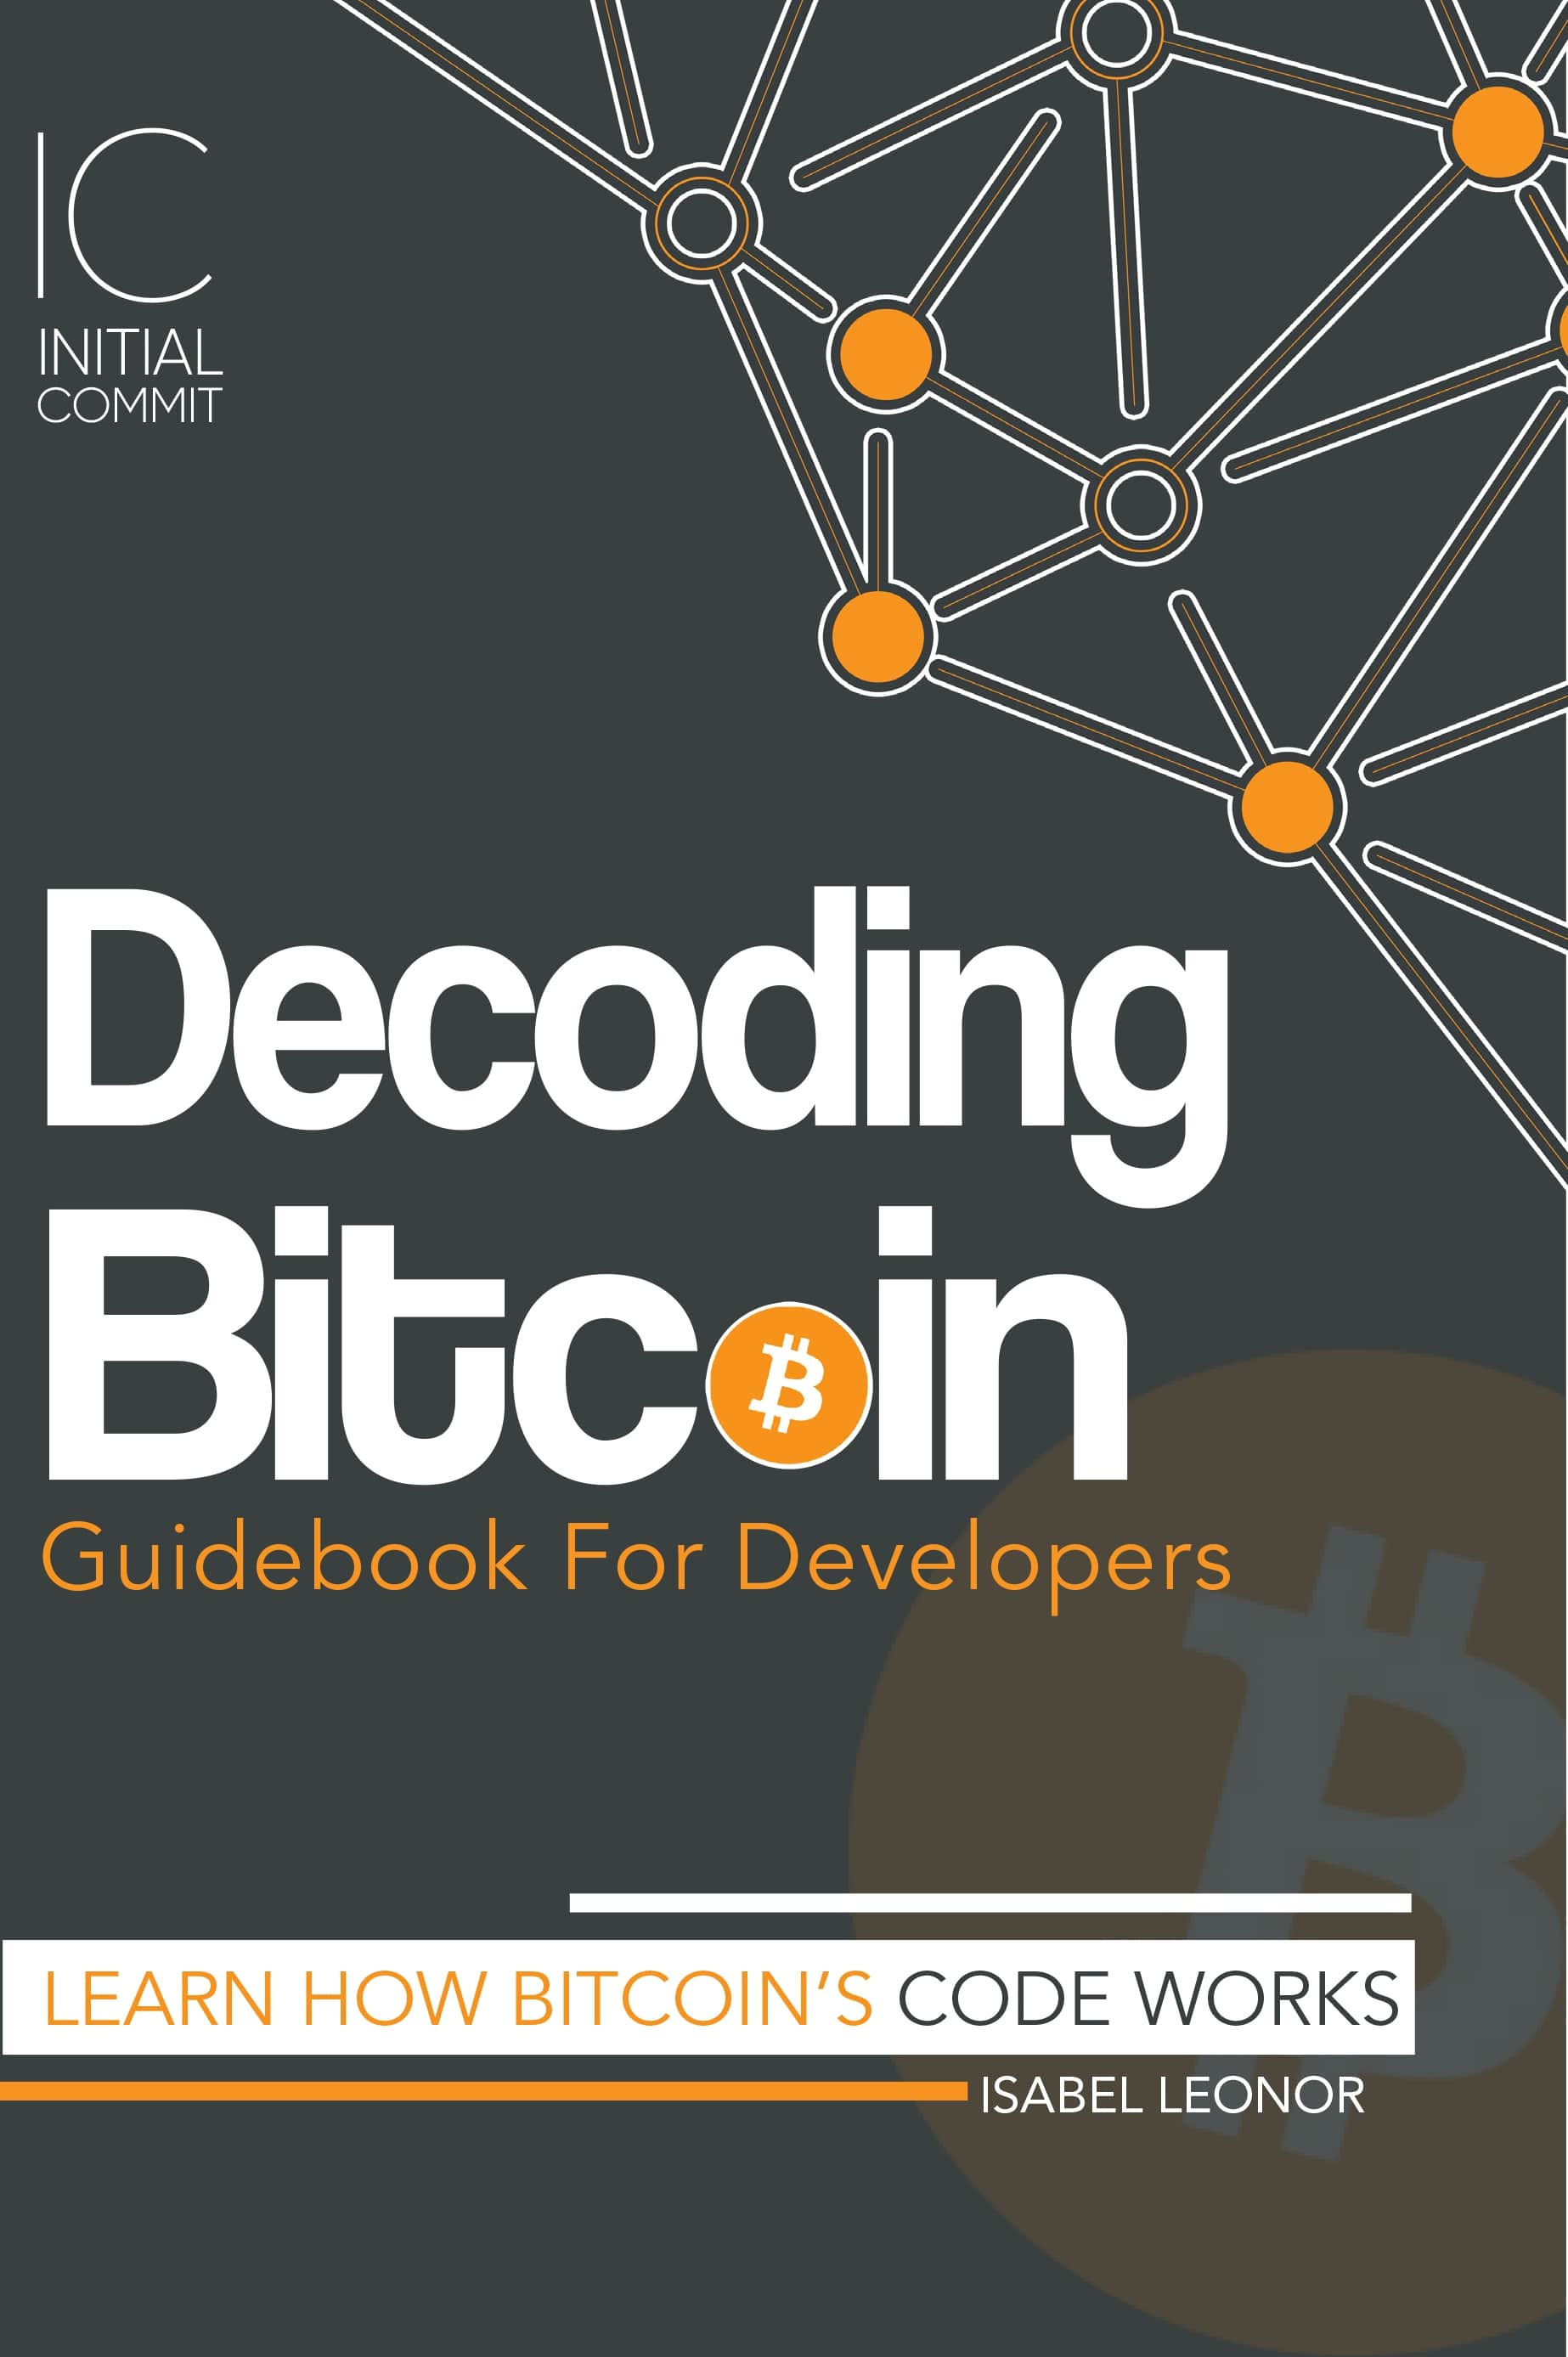 Image of the Baby Bitcoin Guidebook for Developers